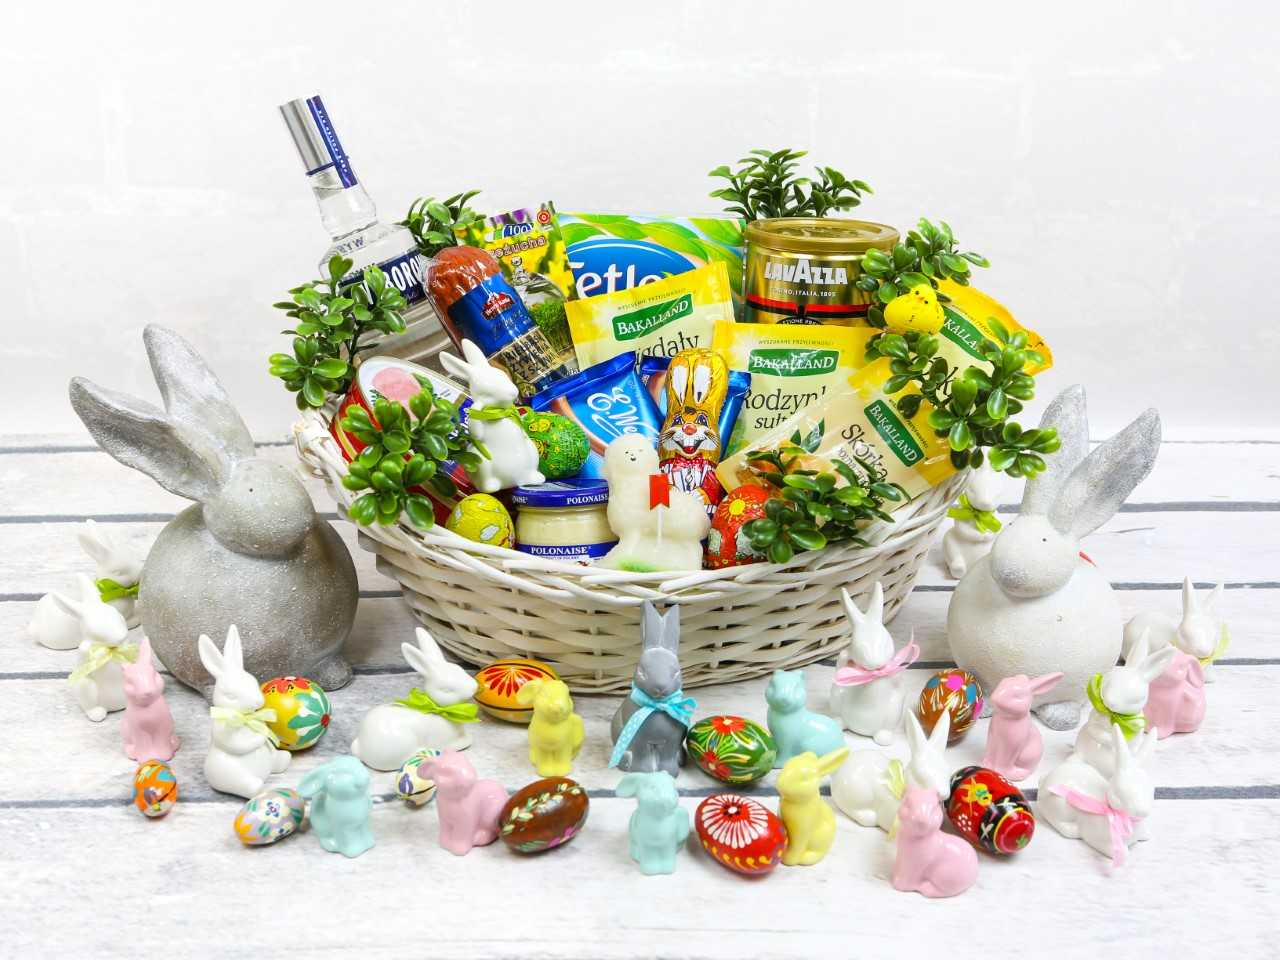 Polonez parcel service easter basket chocolate bunny chocolate eggs sugar easter lamb horseradish semi dried sausage picnic ham raisins almonds candied orange zest negle Image collections